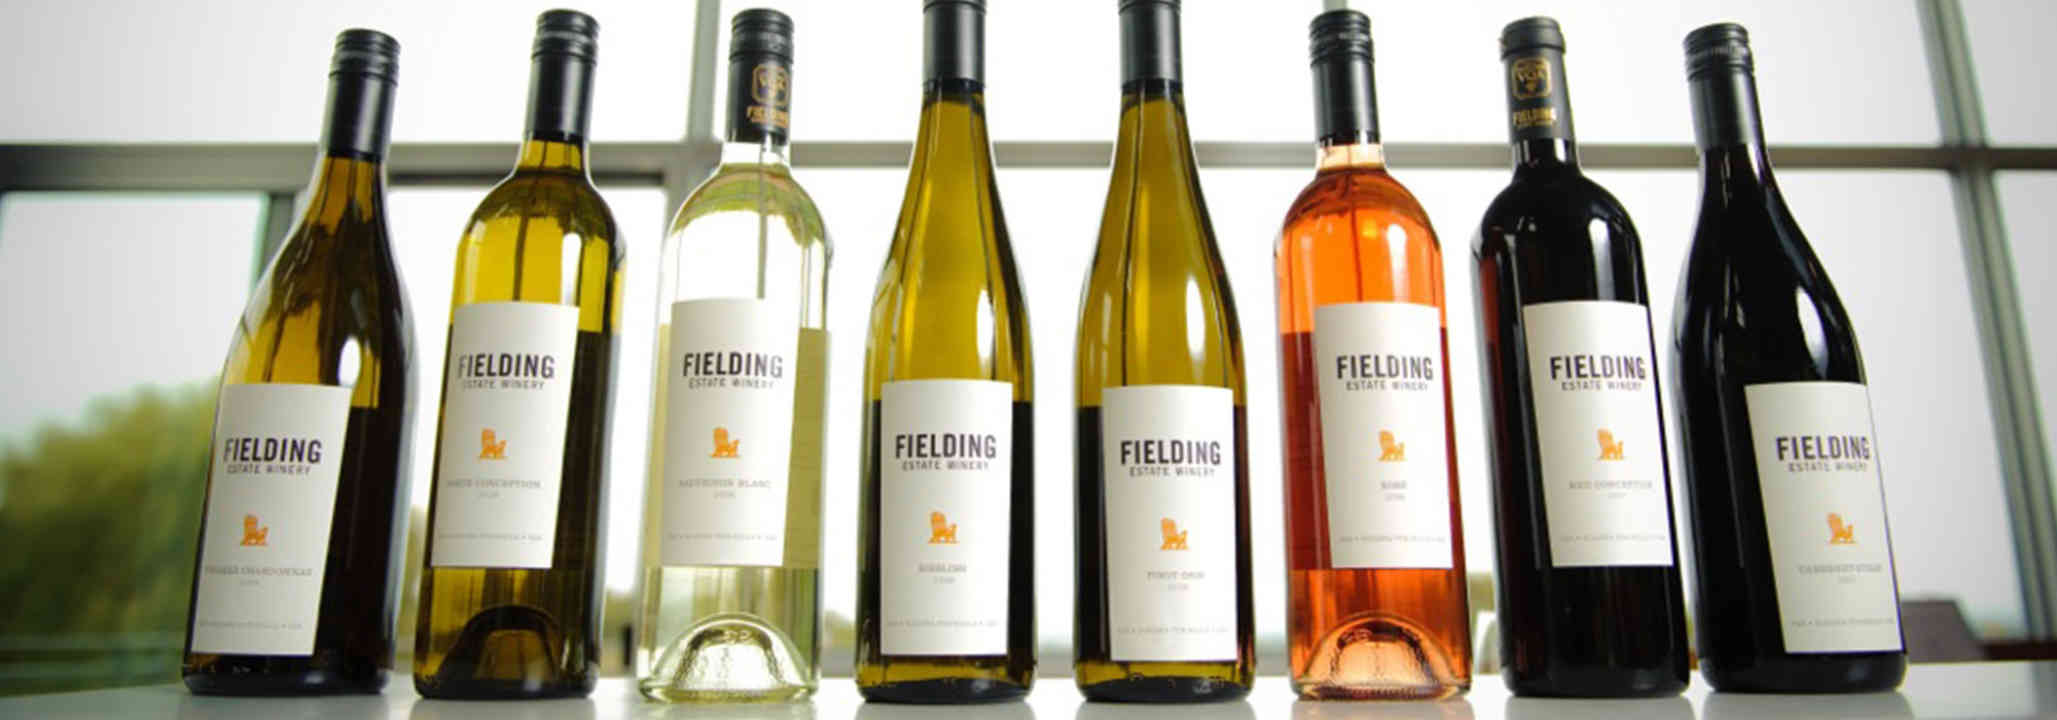 Vineyard bottles of wine Fielding Estate Winery Lincoln Ulocal Local Product Local Purchase